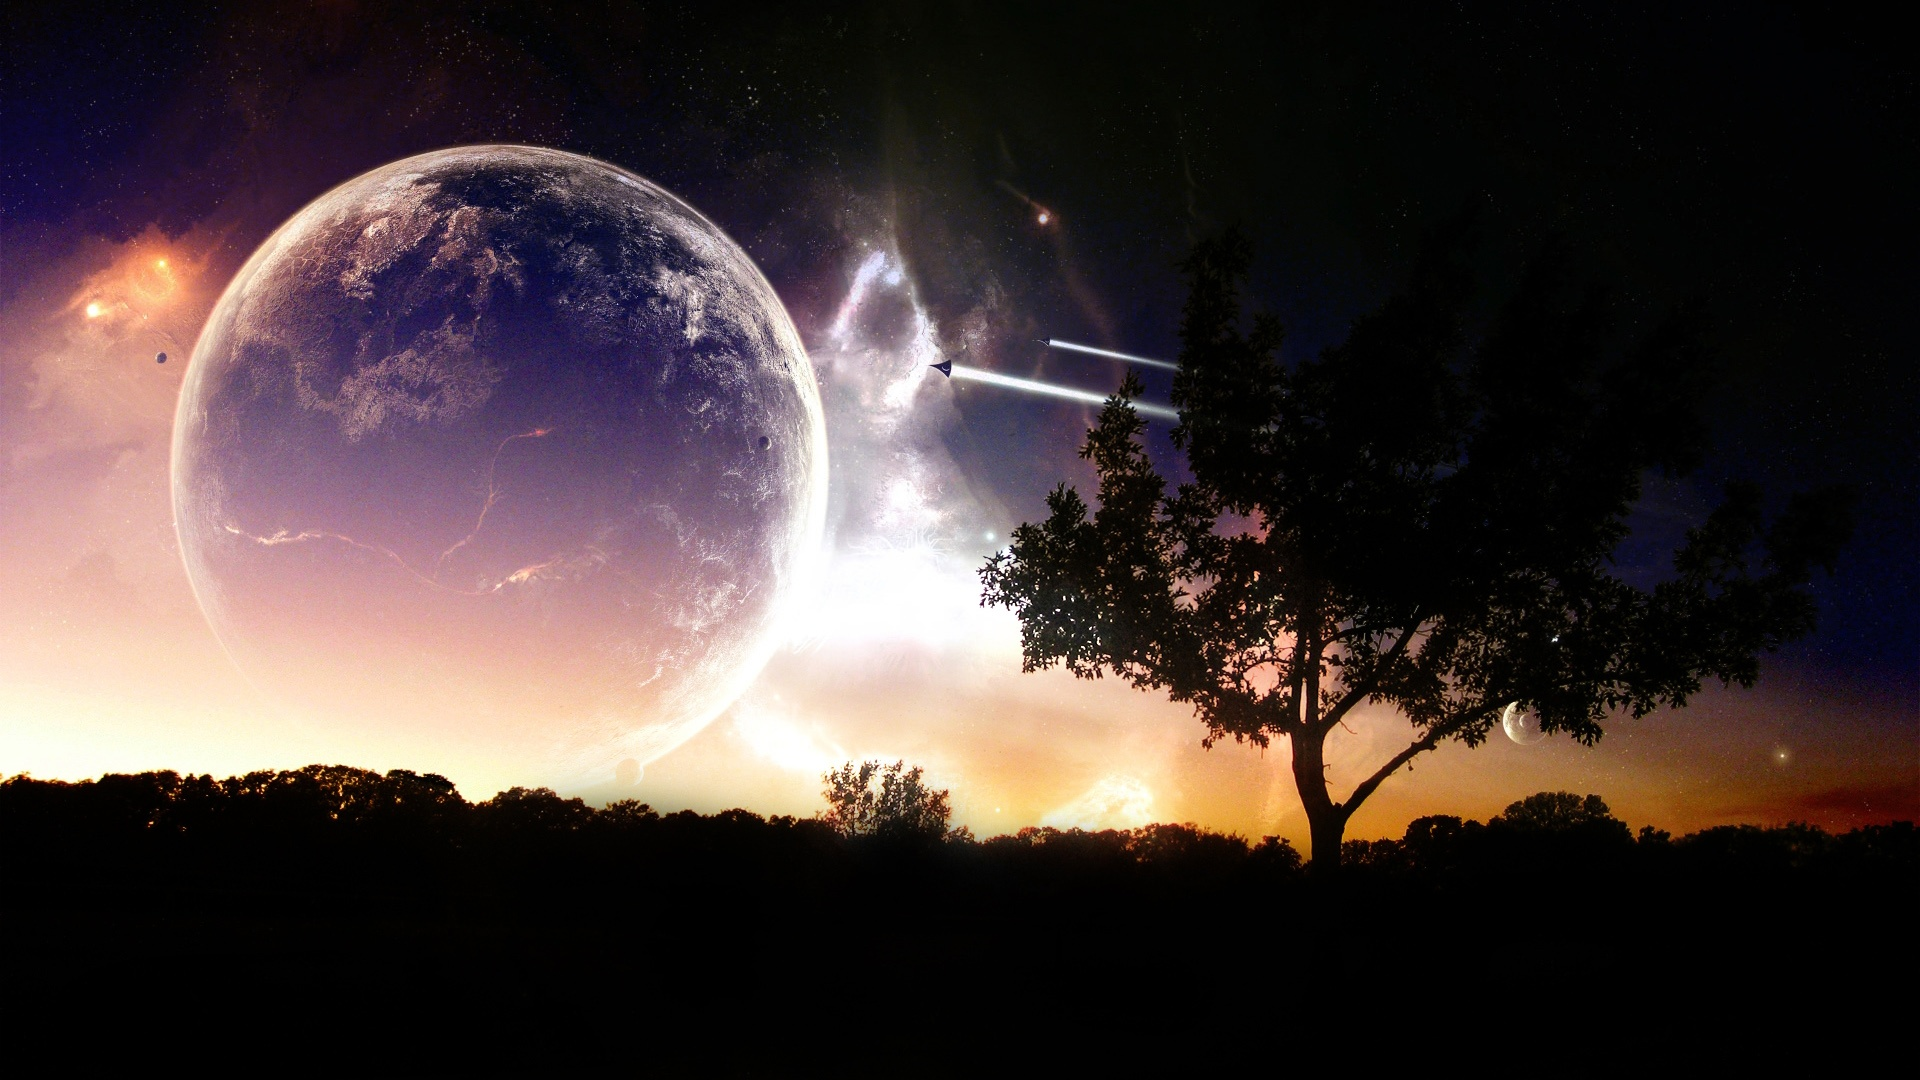 Space Wallpapers Hd Universe Wallpapers Planet Wallpapers 1920x1080